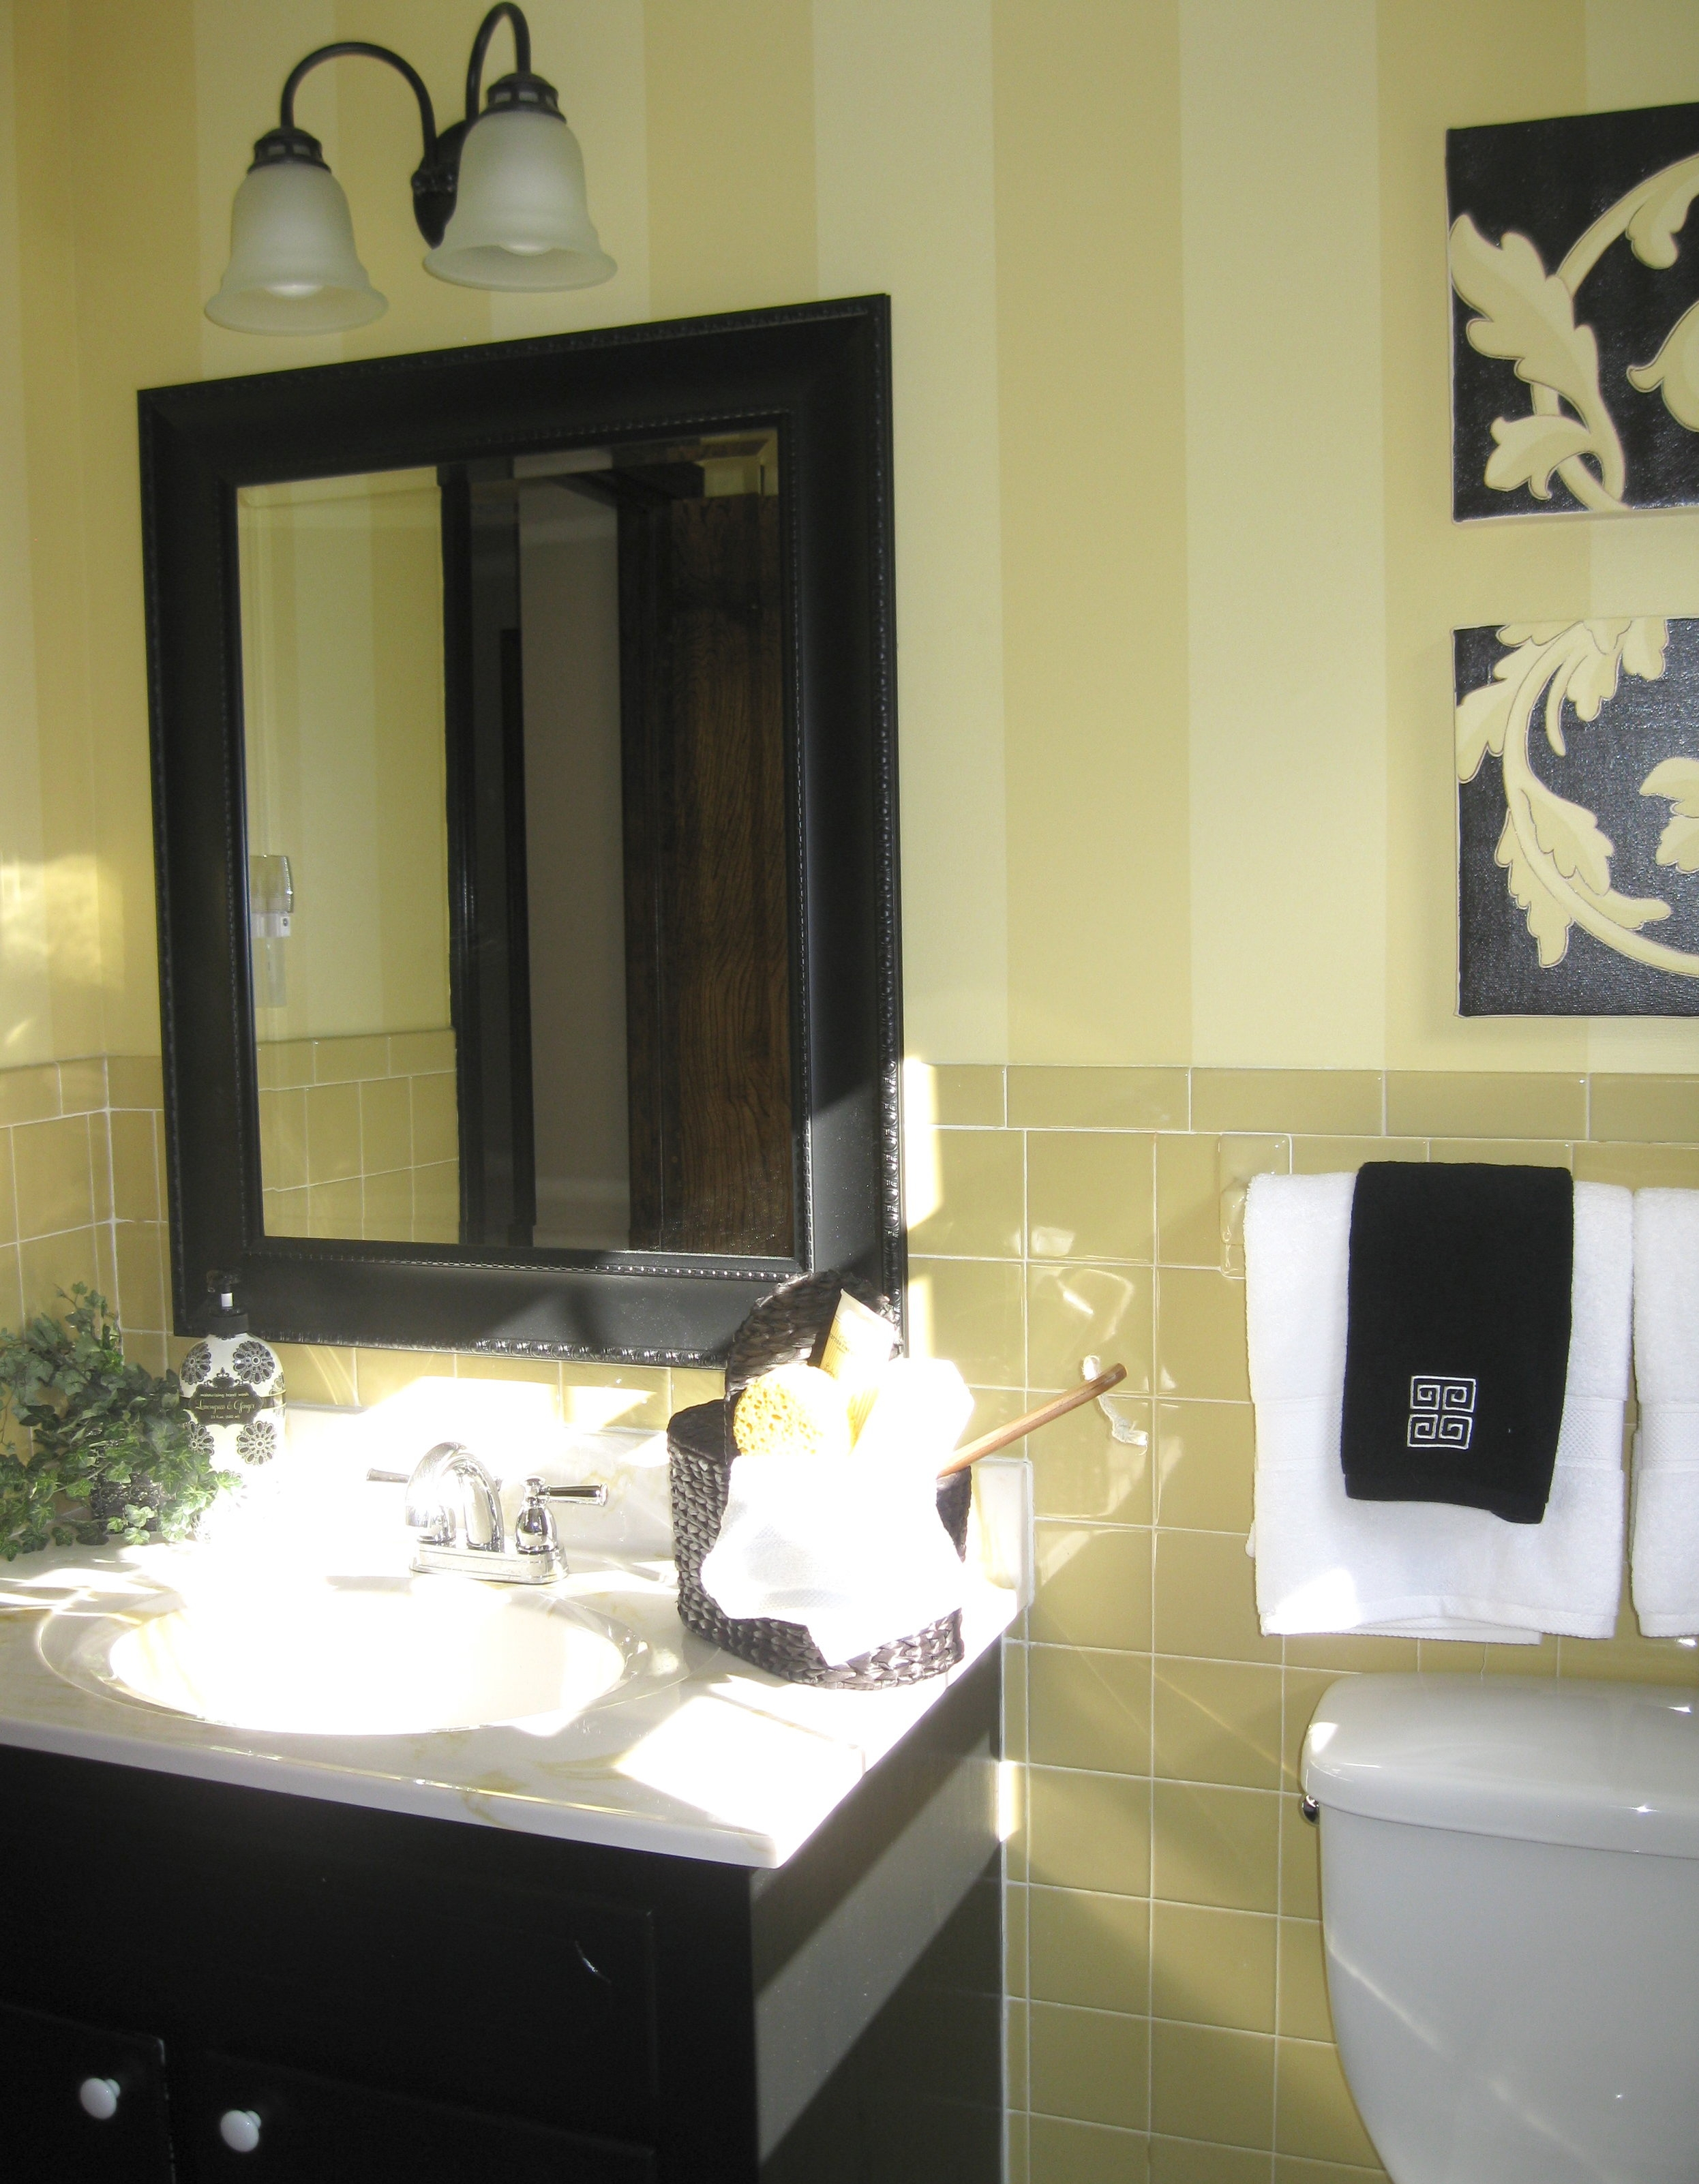 - This dated harvest gold bathroom  was salvaged by painting the cabinetry and millwork in a glossy black and the walls in a tone on tone wide stripe selected to blend with the existing tiles for a budget conscious makeover.